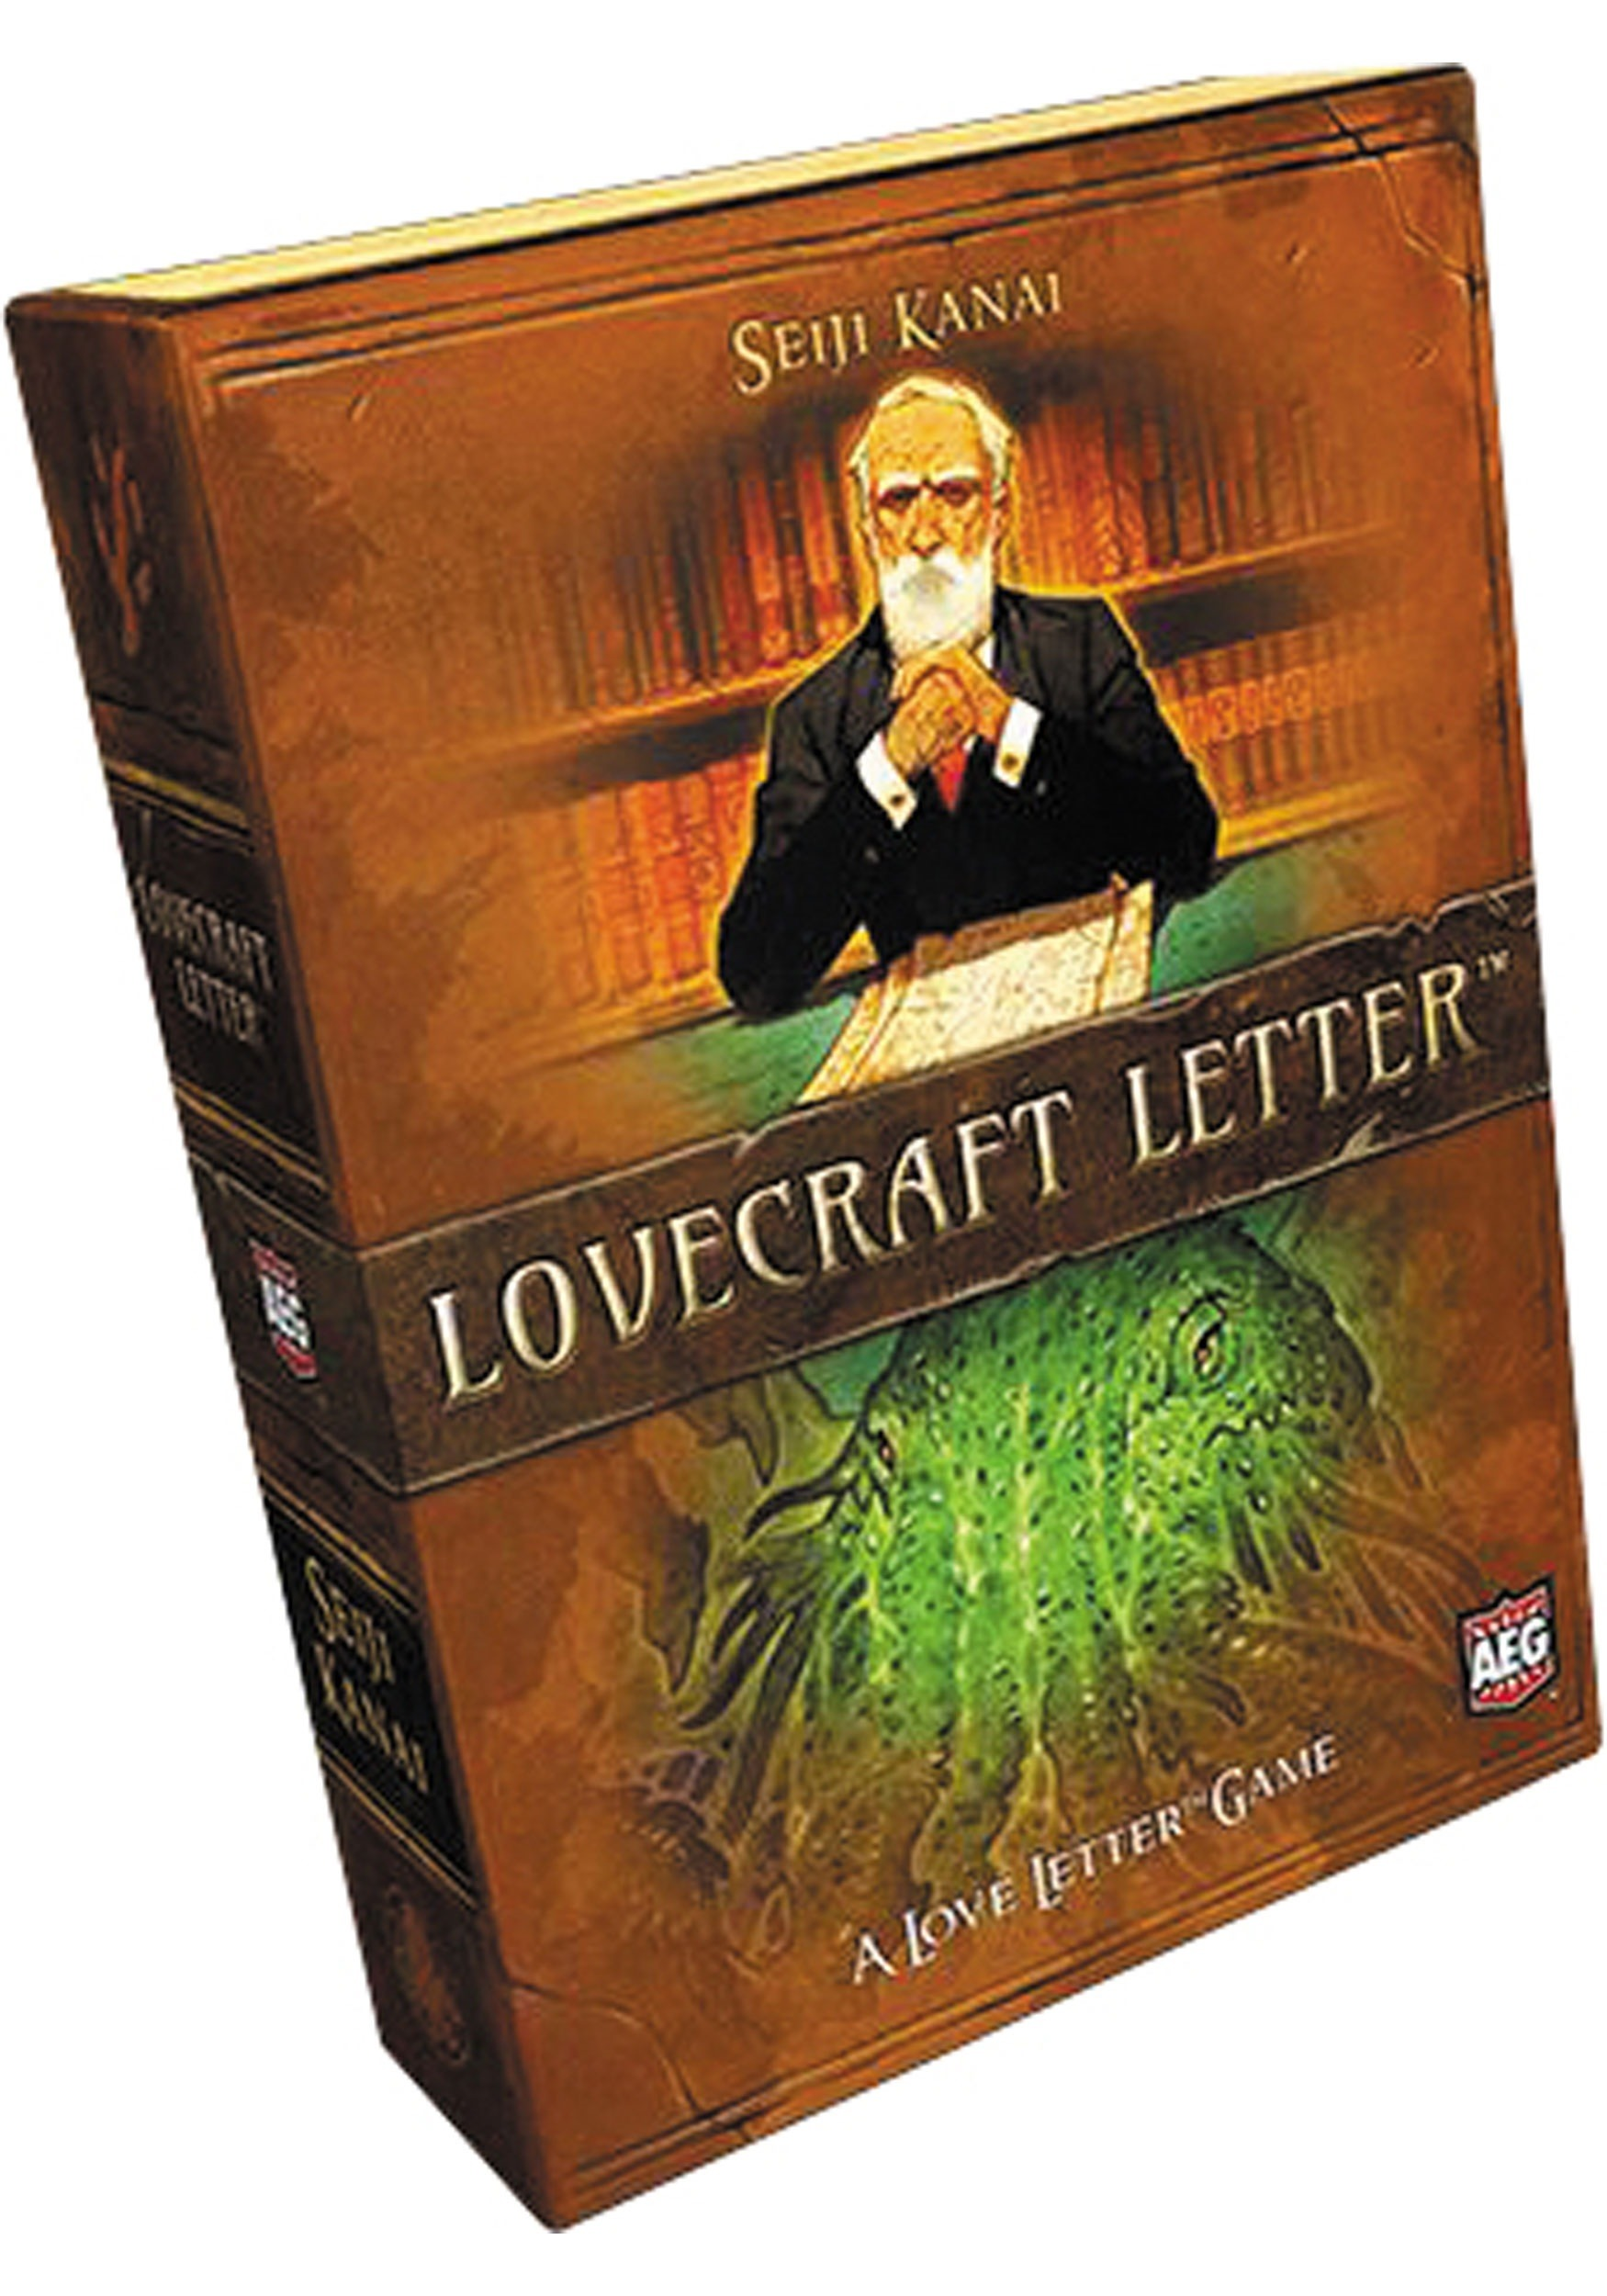 Lovecraft_Letter_A_Love_Letter_Game